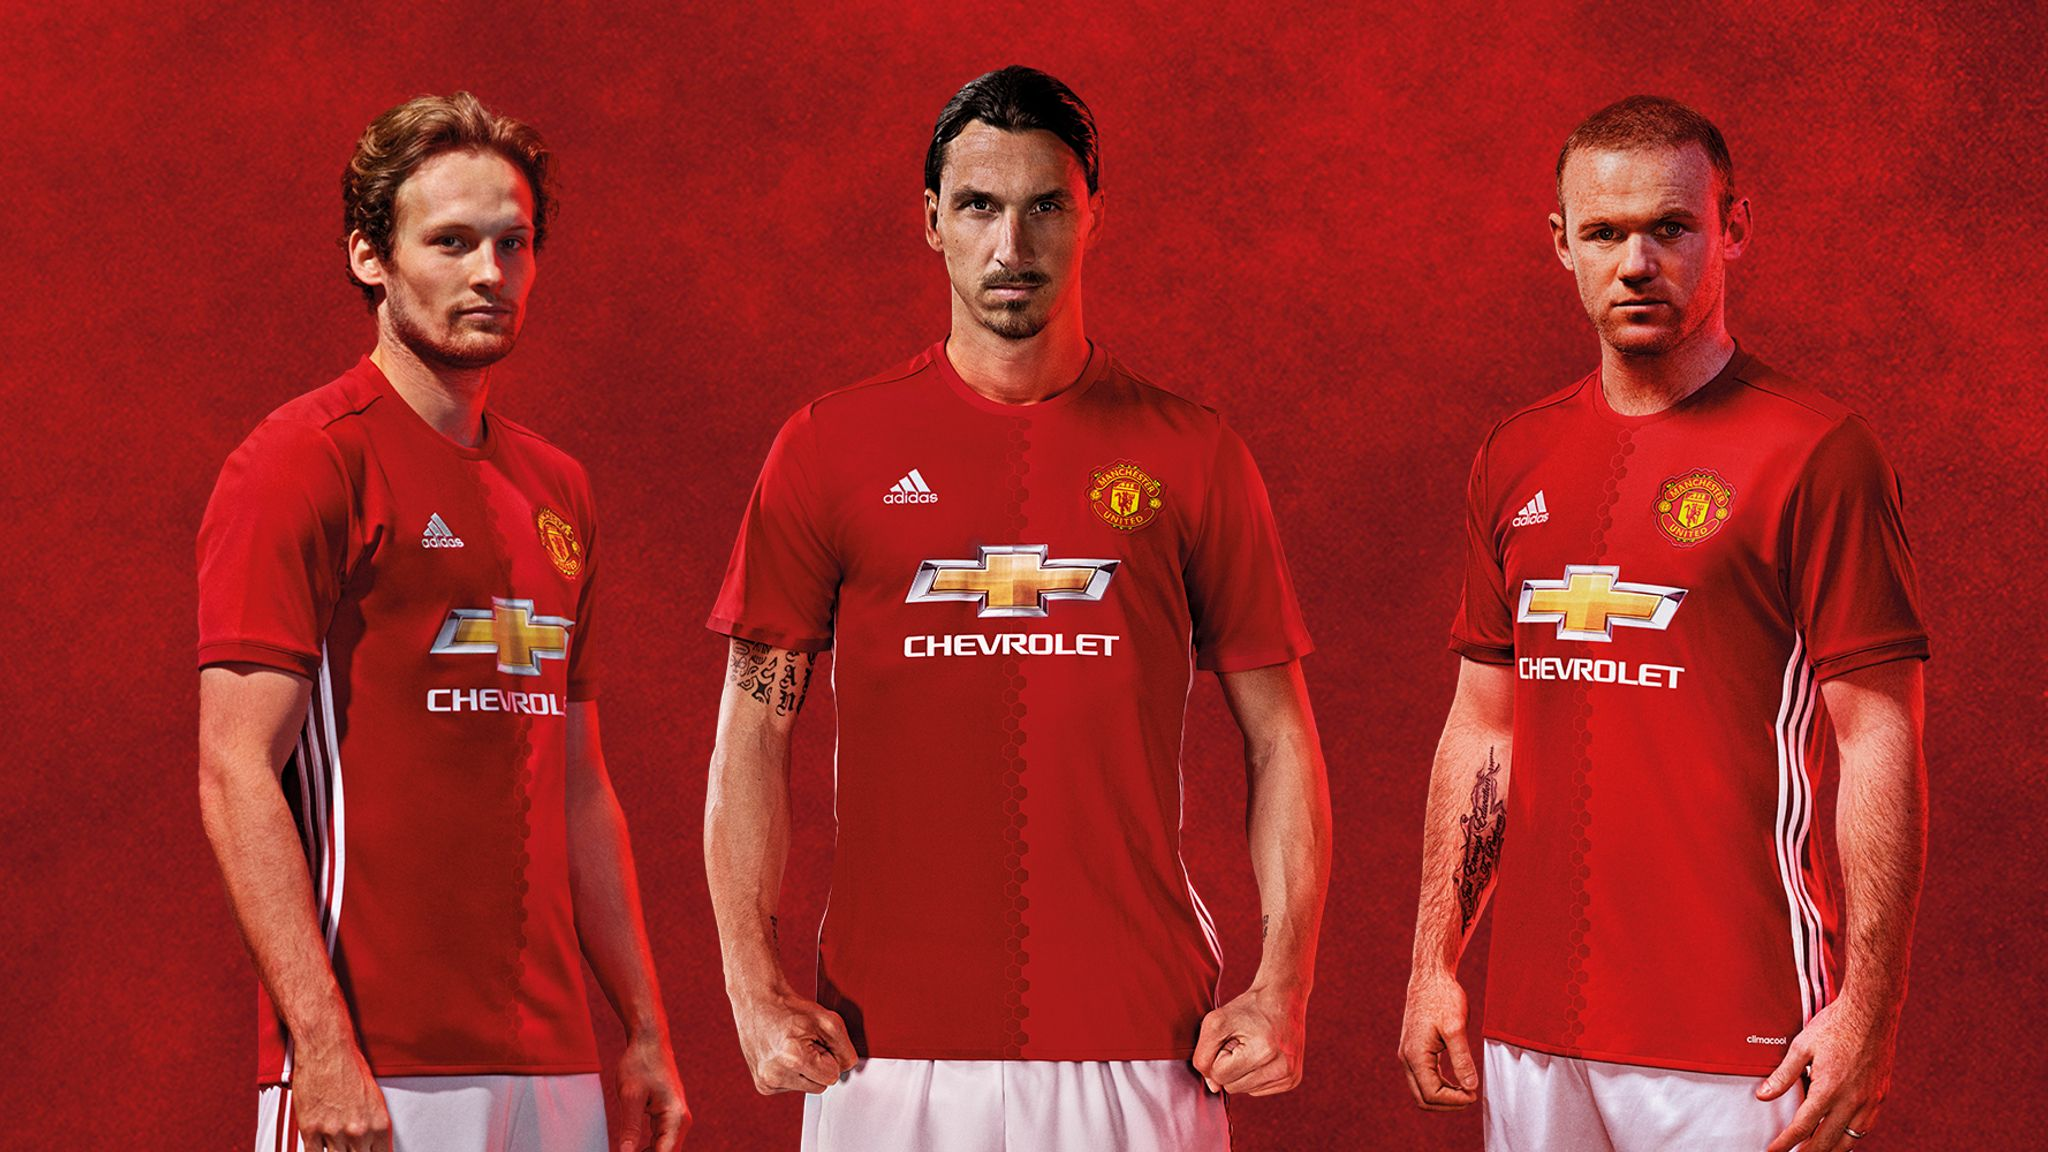 55a9c0bd3 Manchester United launch new adidas home kit for 2016/17 | Football News |  Sky Sports